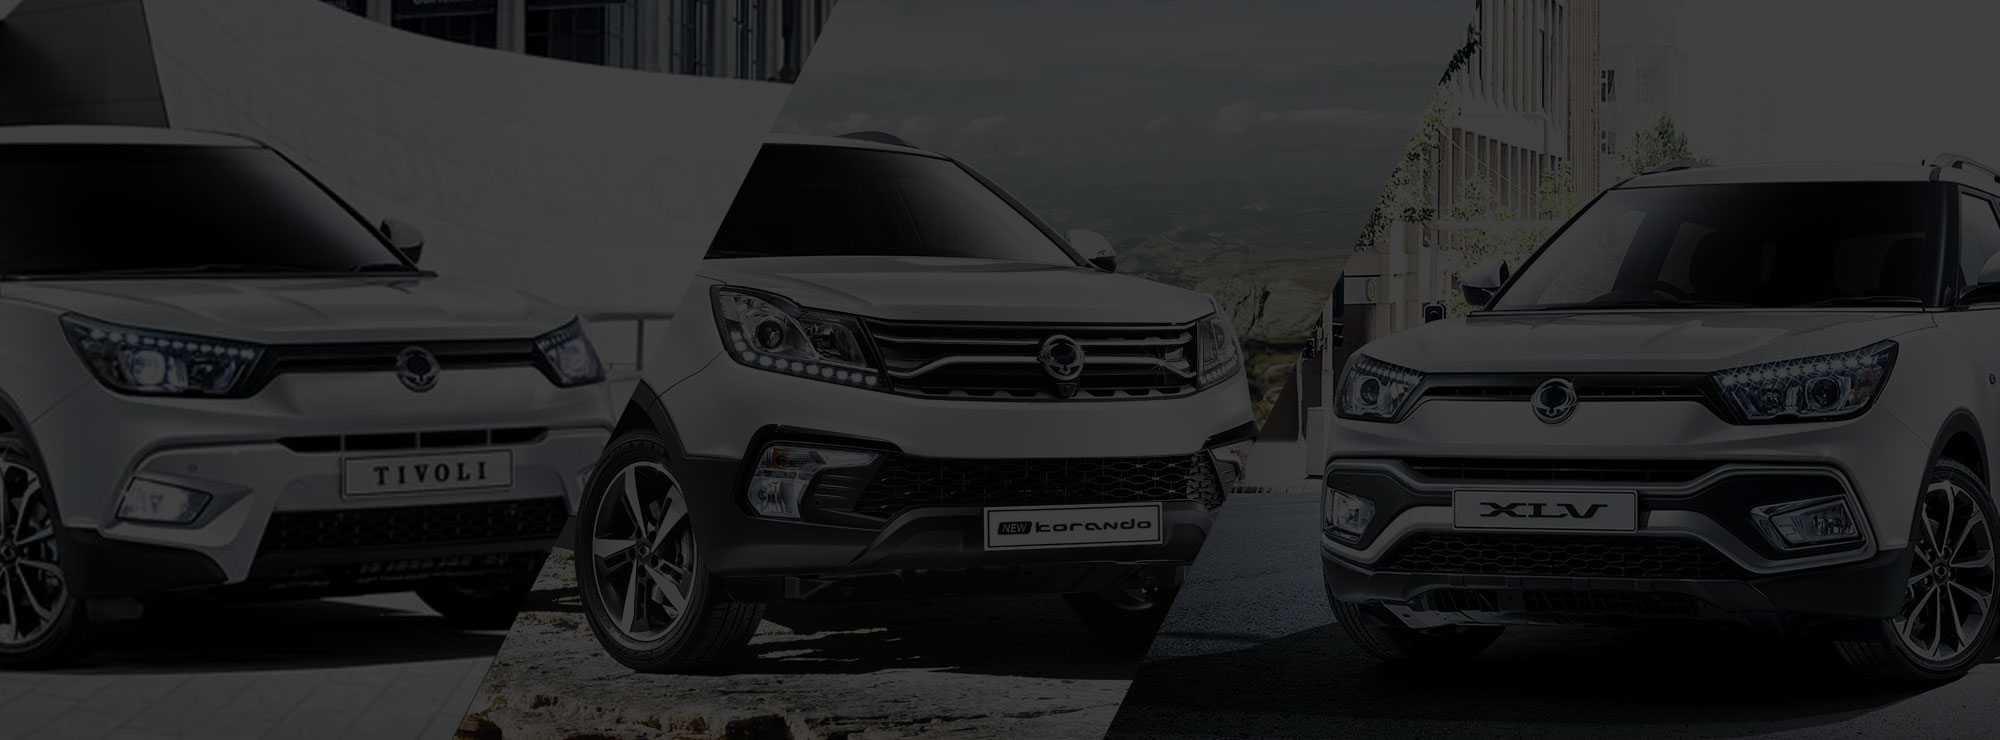 <strong>0% APR OVER 5 YEARS<br/>ON SELECTED MODELS</strong>